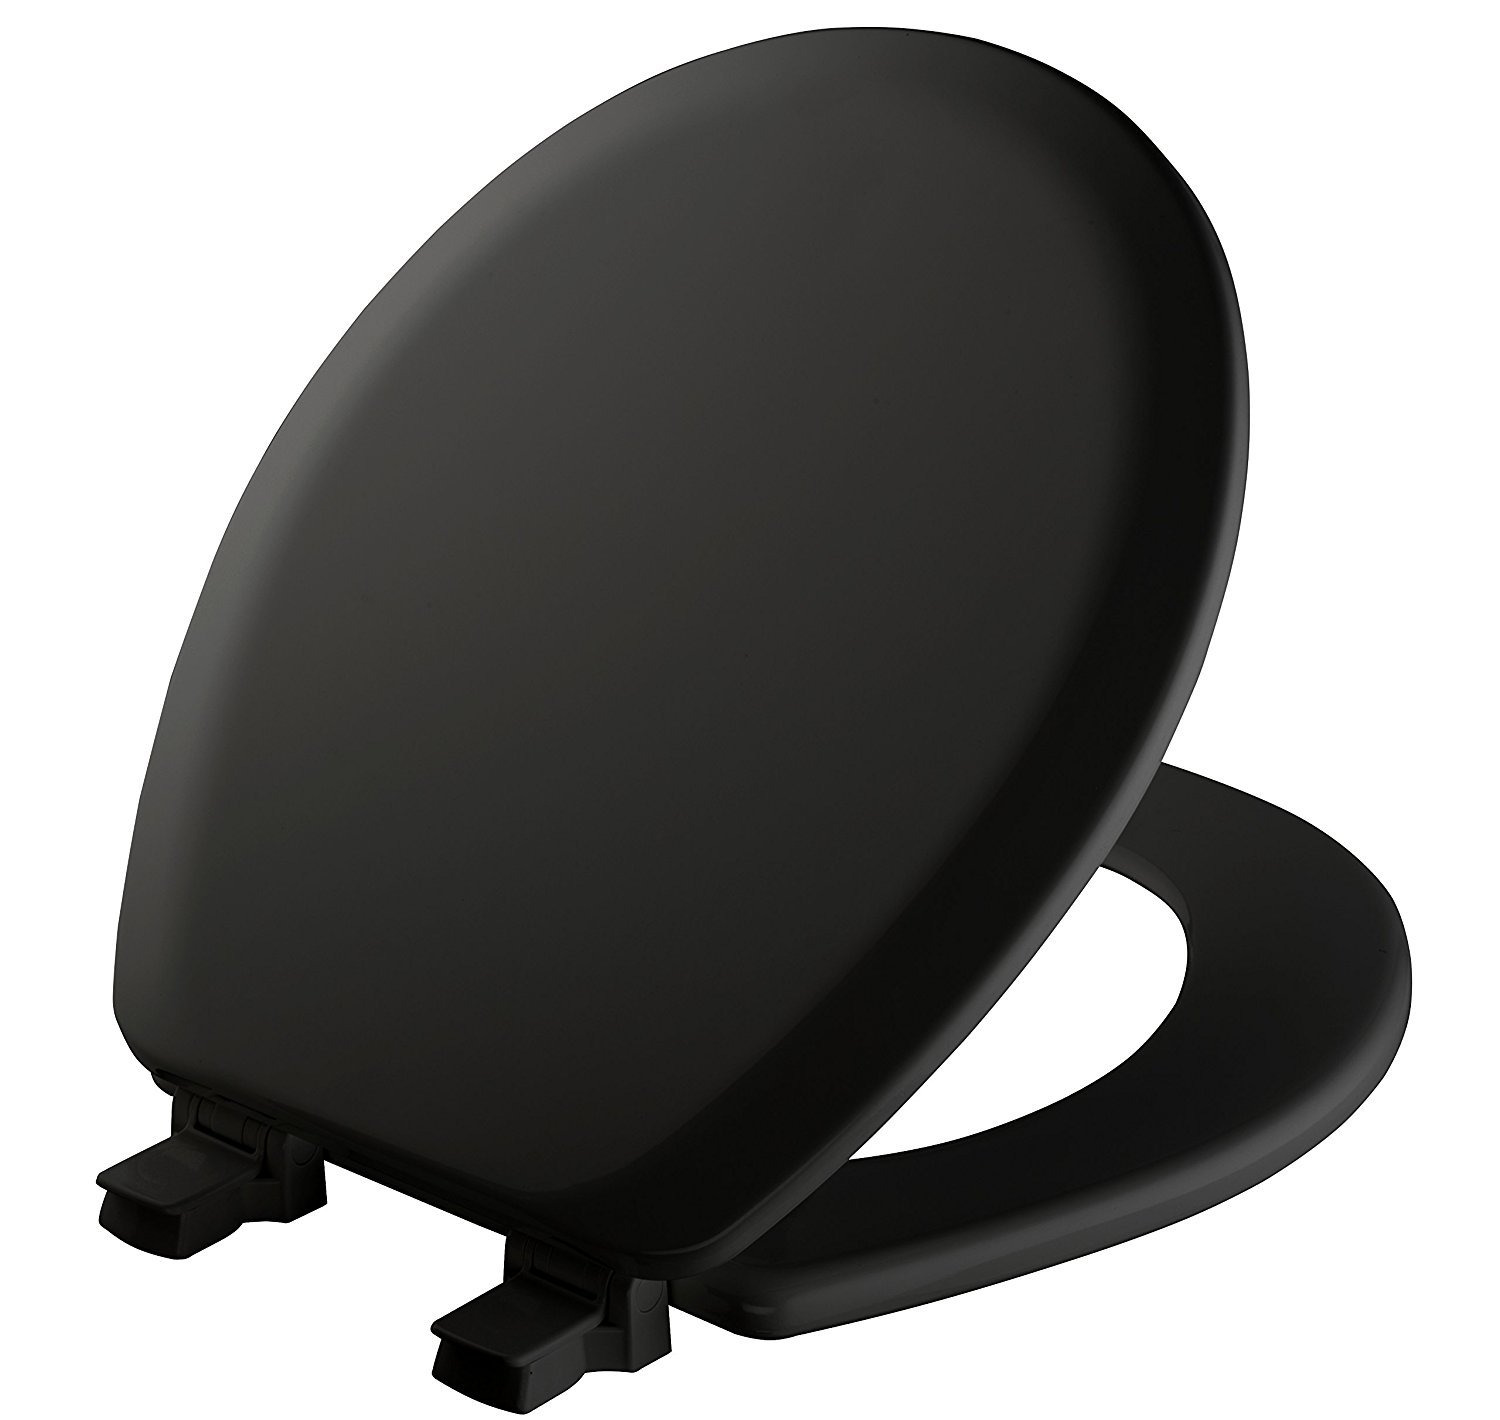 Mayfair Molded Wood Toilet Seat with Easy Clean & Change Hinges and STA-TITE Seat Fastening System, Round, Black, 41EC 047